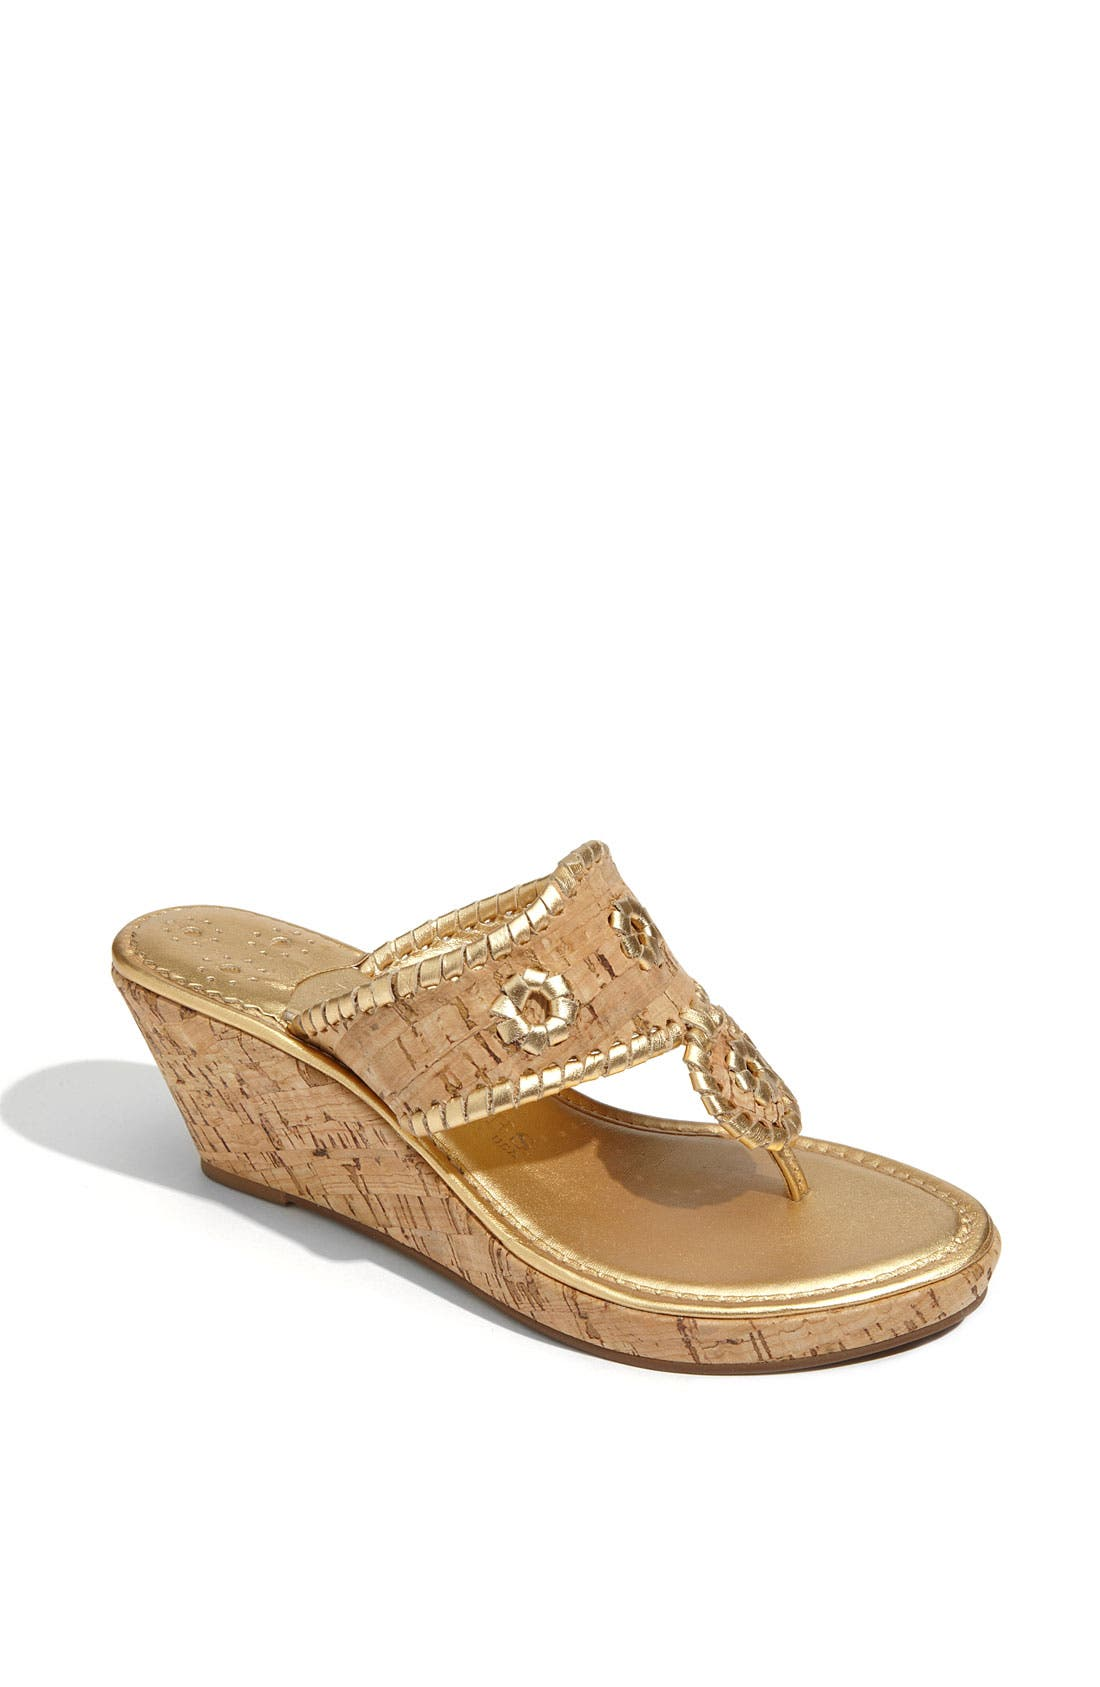 Alternate Image 1 Selected - Jack Rogers 'Marbella' Cork Sandal